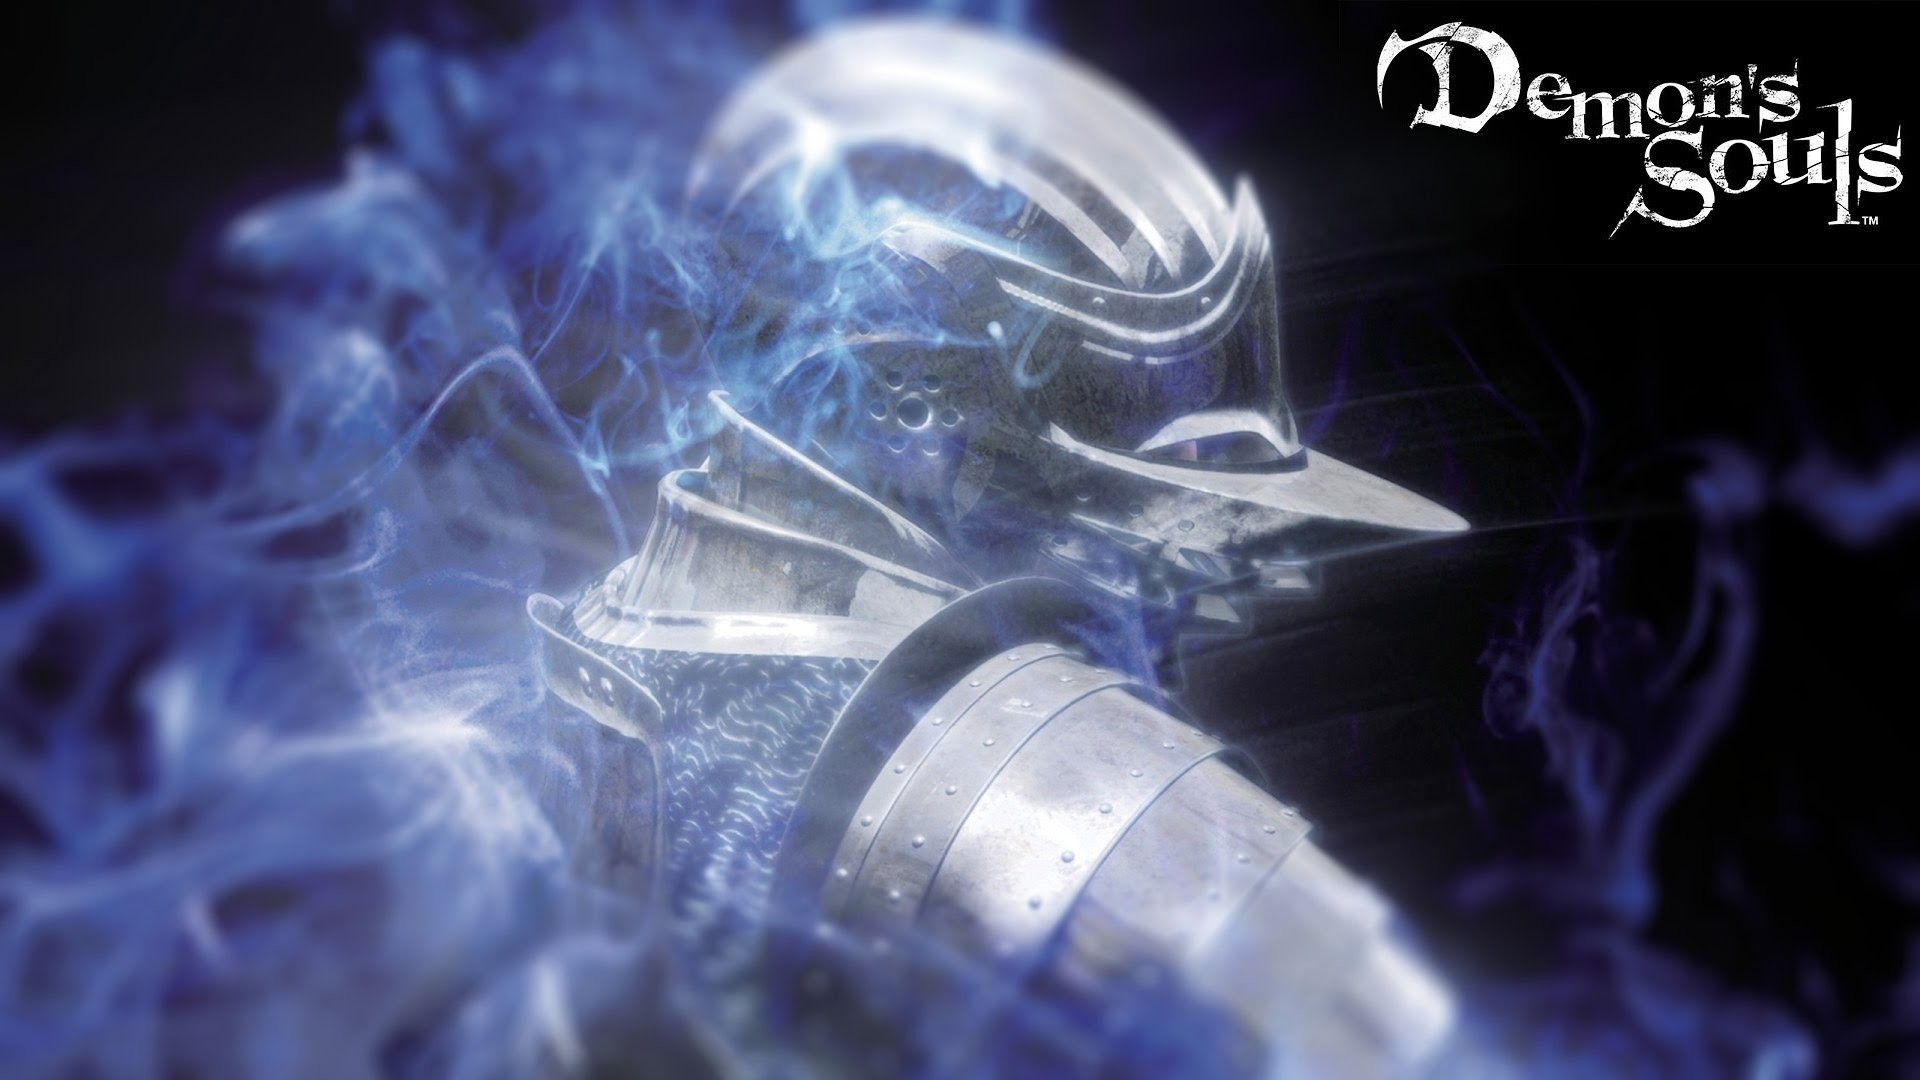 Res: 1920x1080, Demon's Souls Wallpapers ( 1080p )